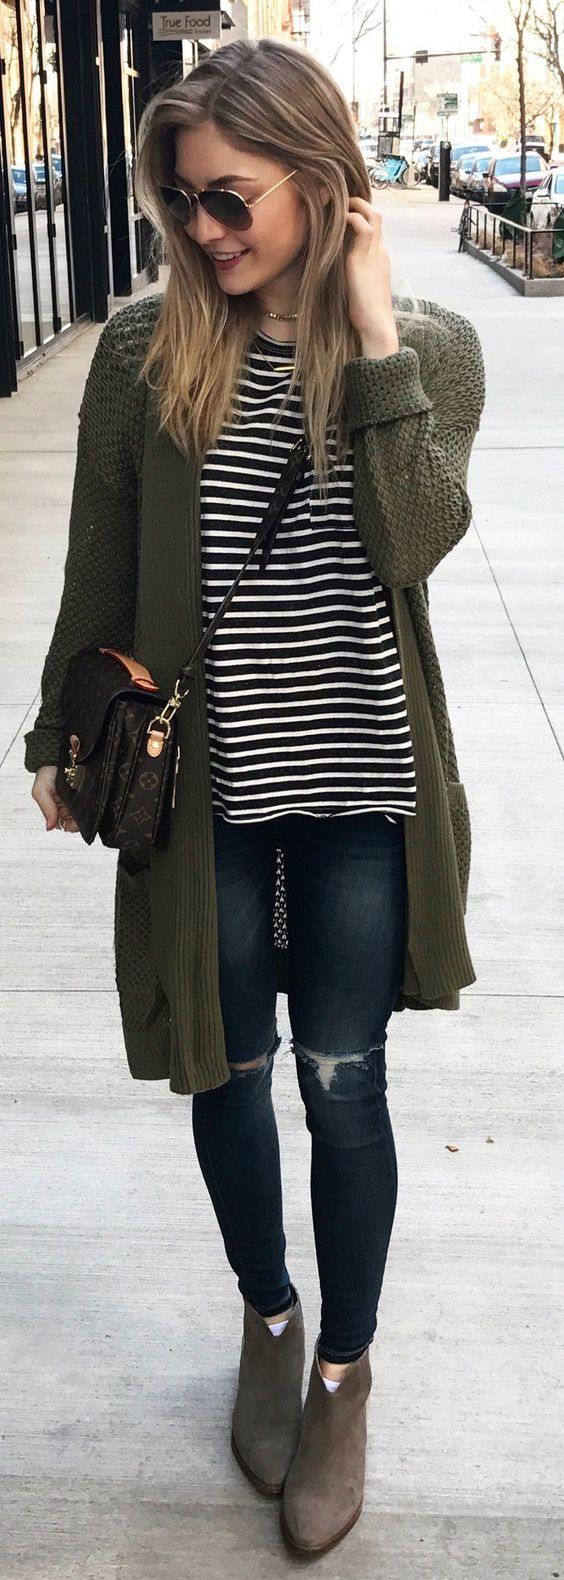 casual style addict: stripped top + bag + cardigan + rips + boots